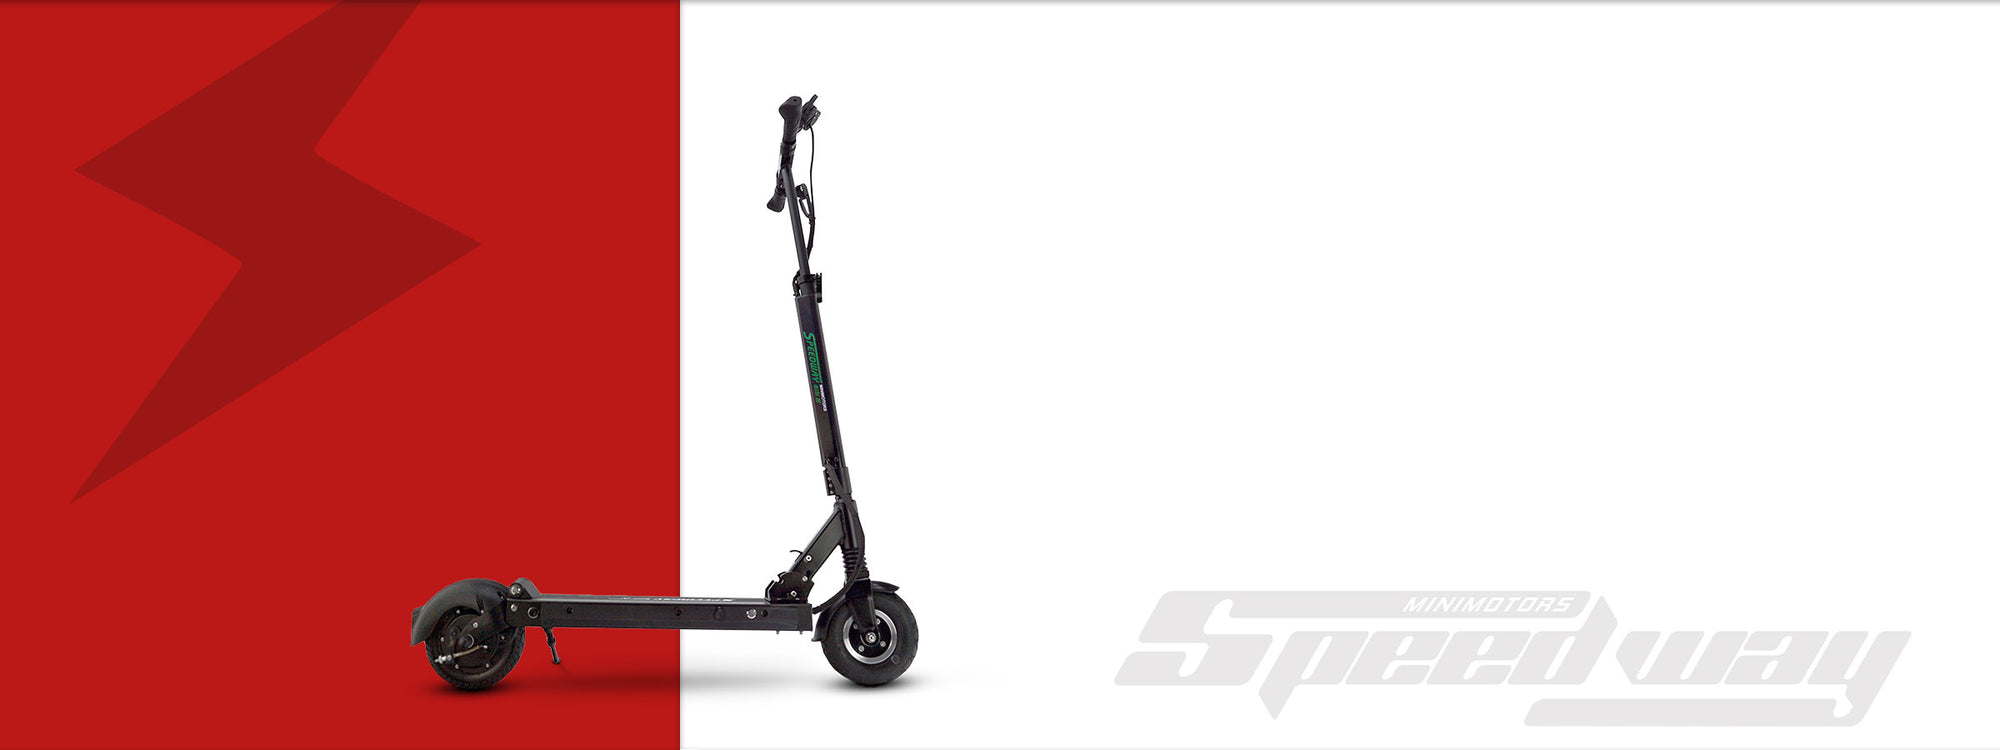 Speedway Mini 4 Pro Solid Tire Electric Scooter